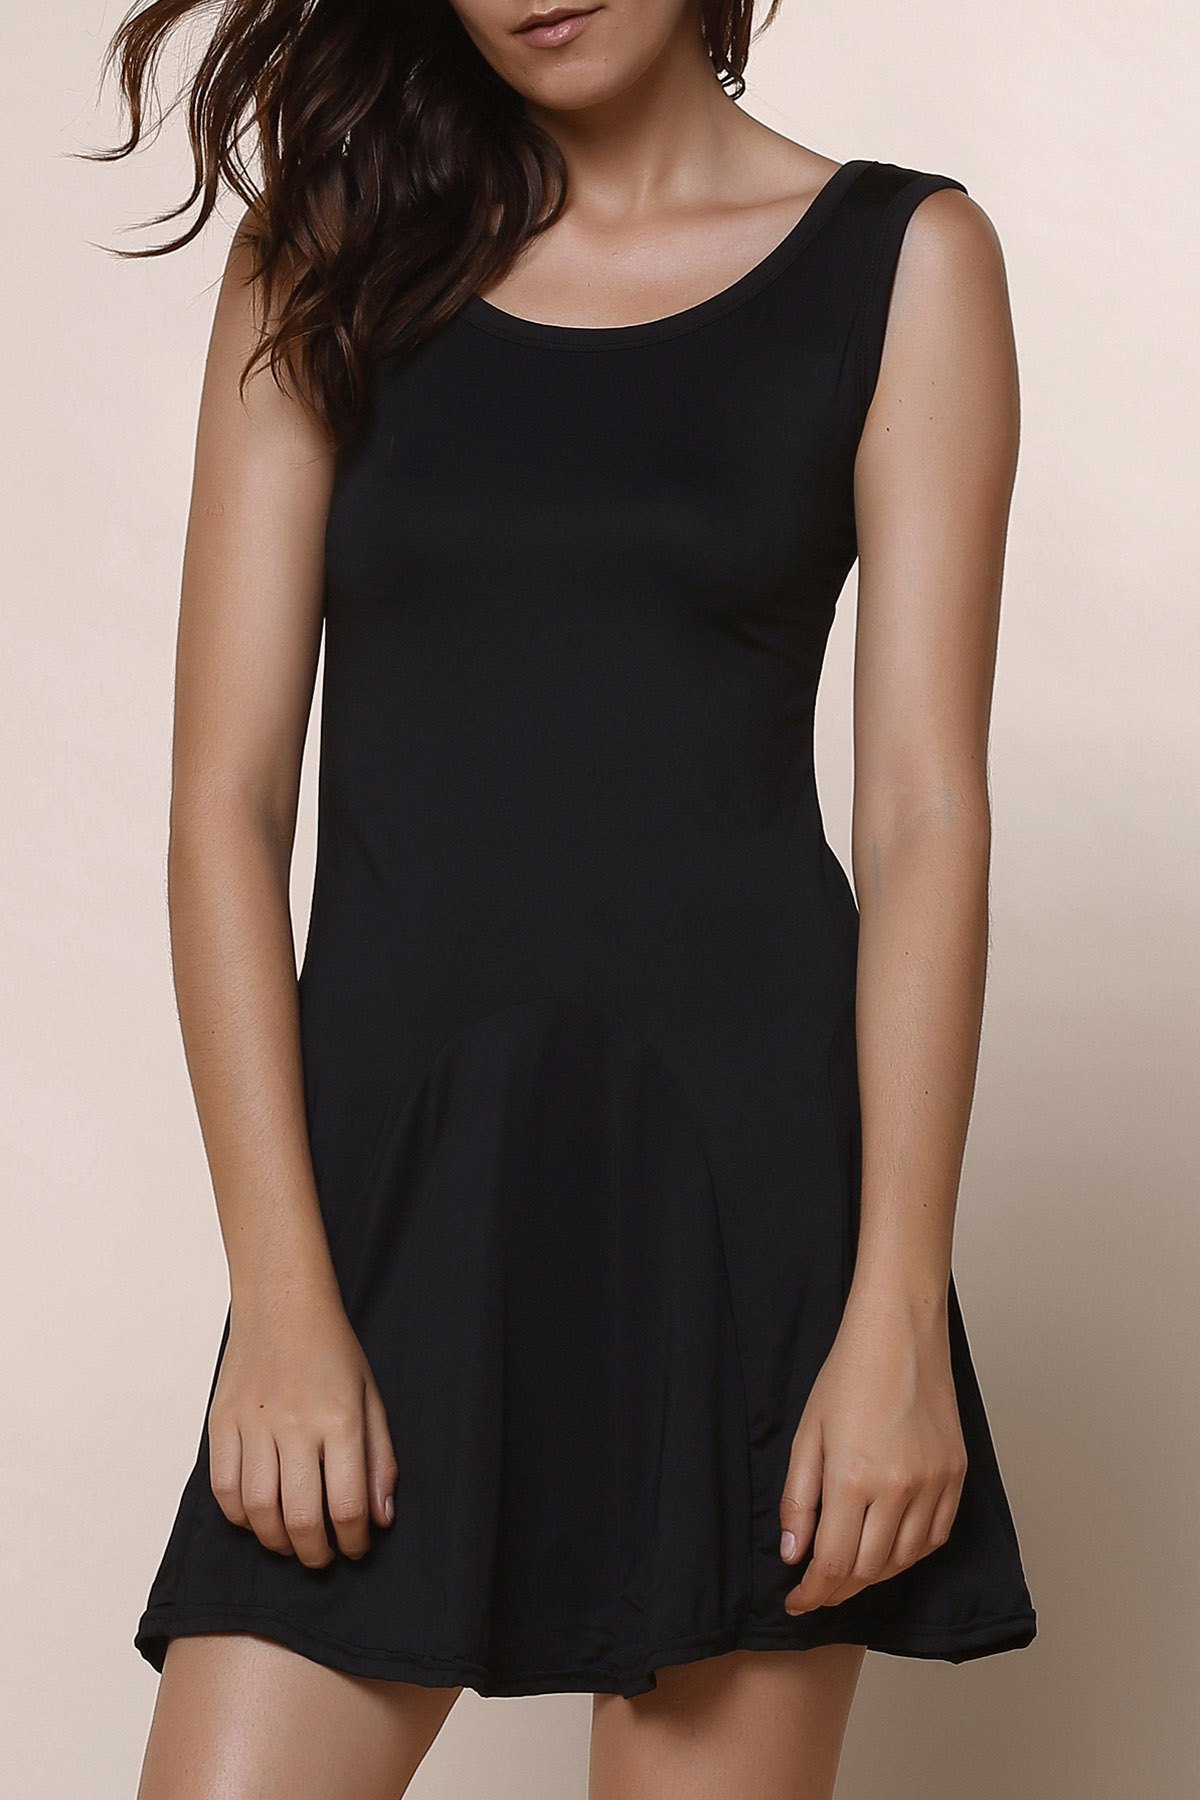 Brief Style Sleeveless Scoop Collar Solid Color Women's Dress - BLACK ONE SIZE(FIT SIZE XS TO M)